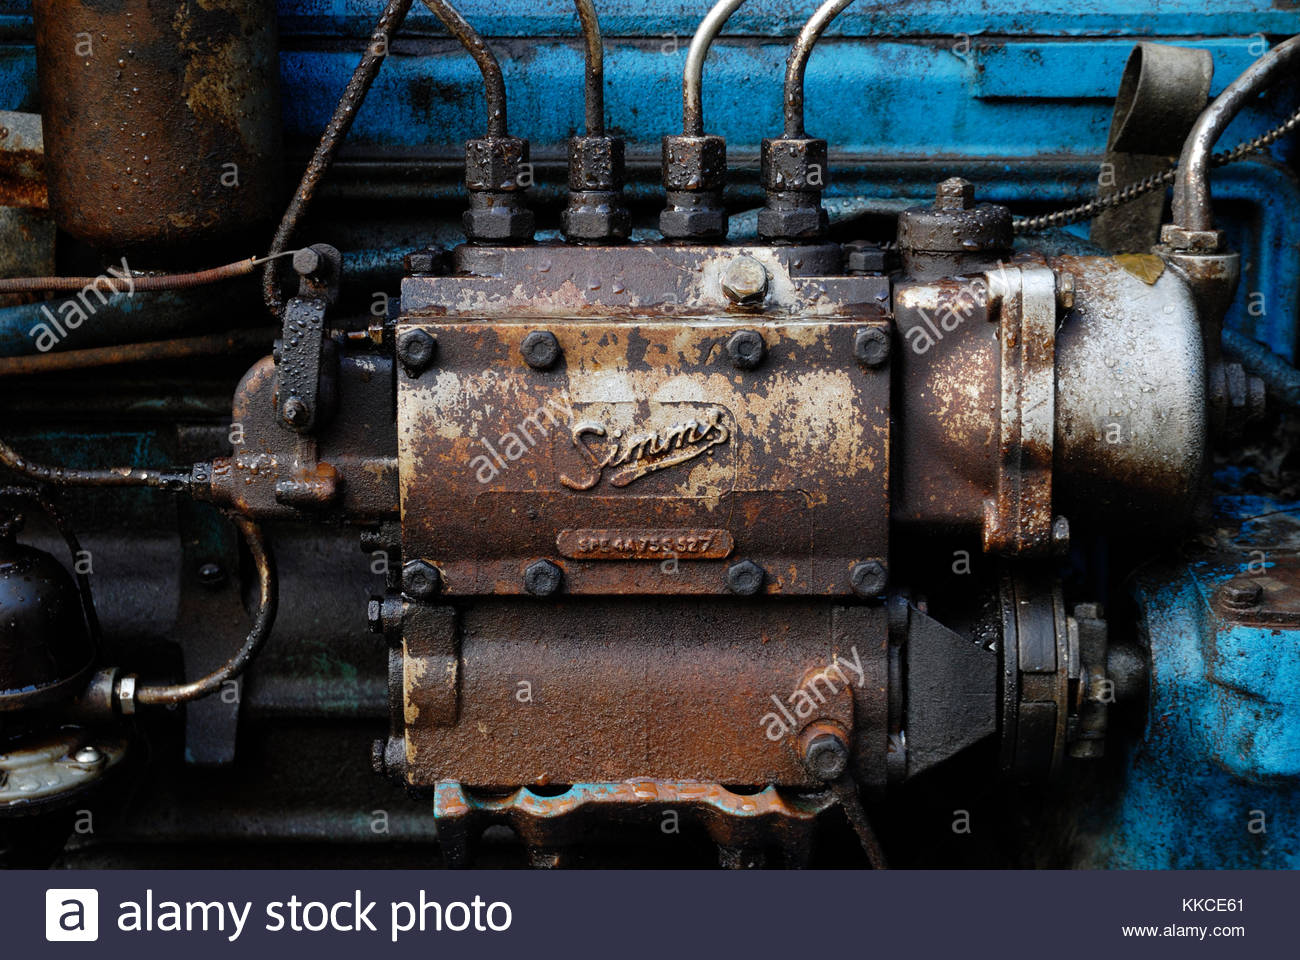 HYDRAULIC PUMP REMOVED FROM FORDSON MAJOR